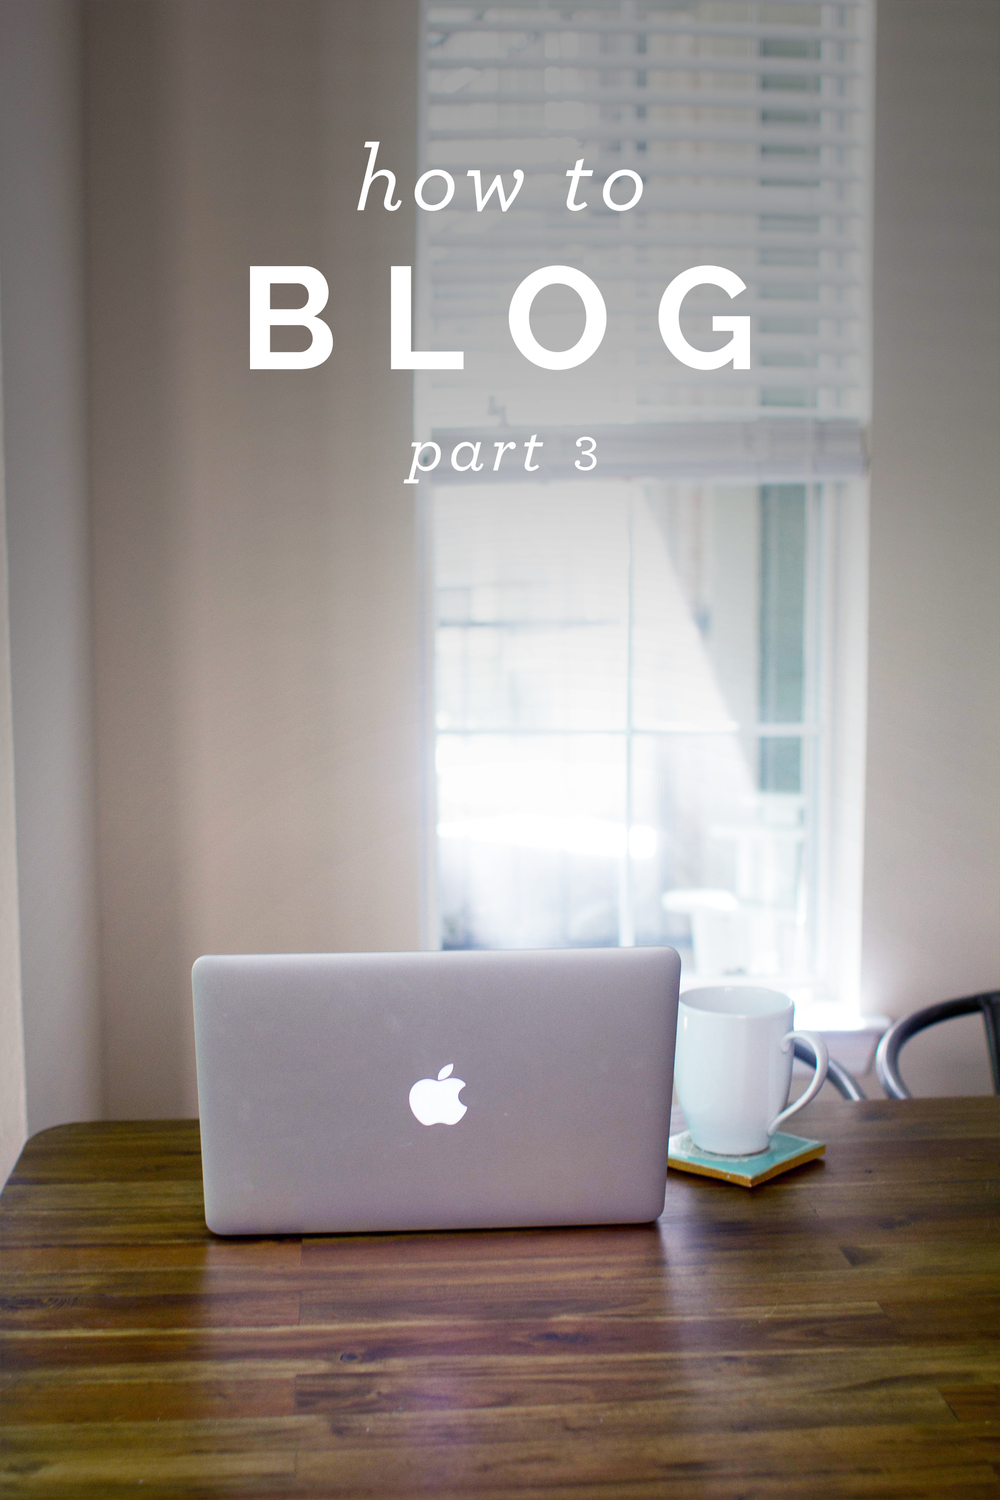 How to Blog, Part 3 - that's pretty ace